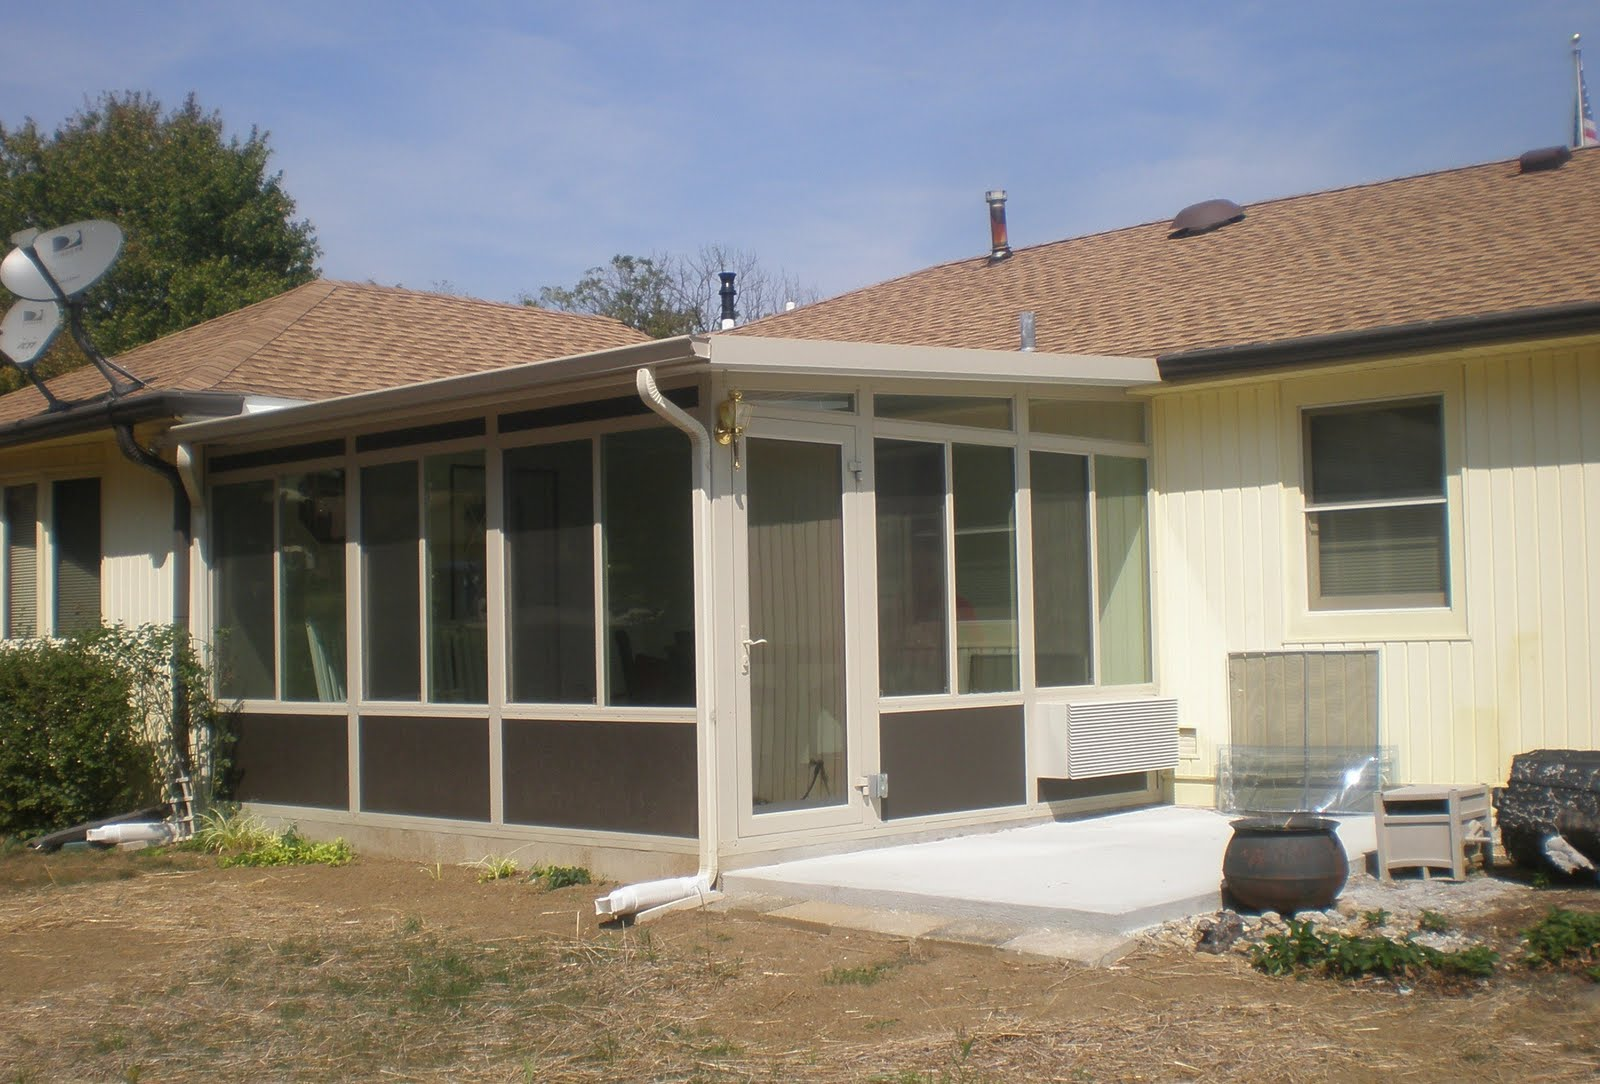 Amazing Added Additional Concrete Pad .. Also Notice The Amana Heating And Air Unit.